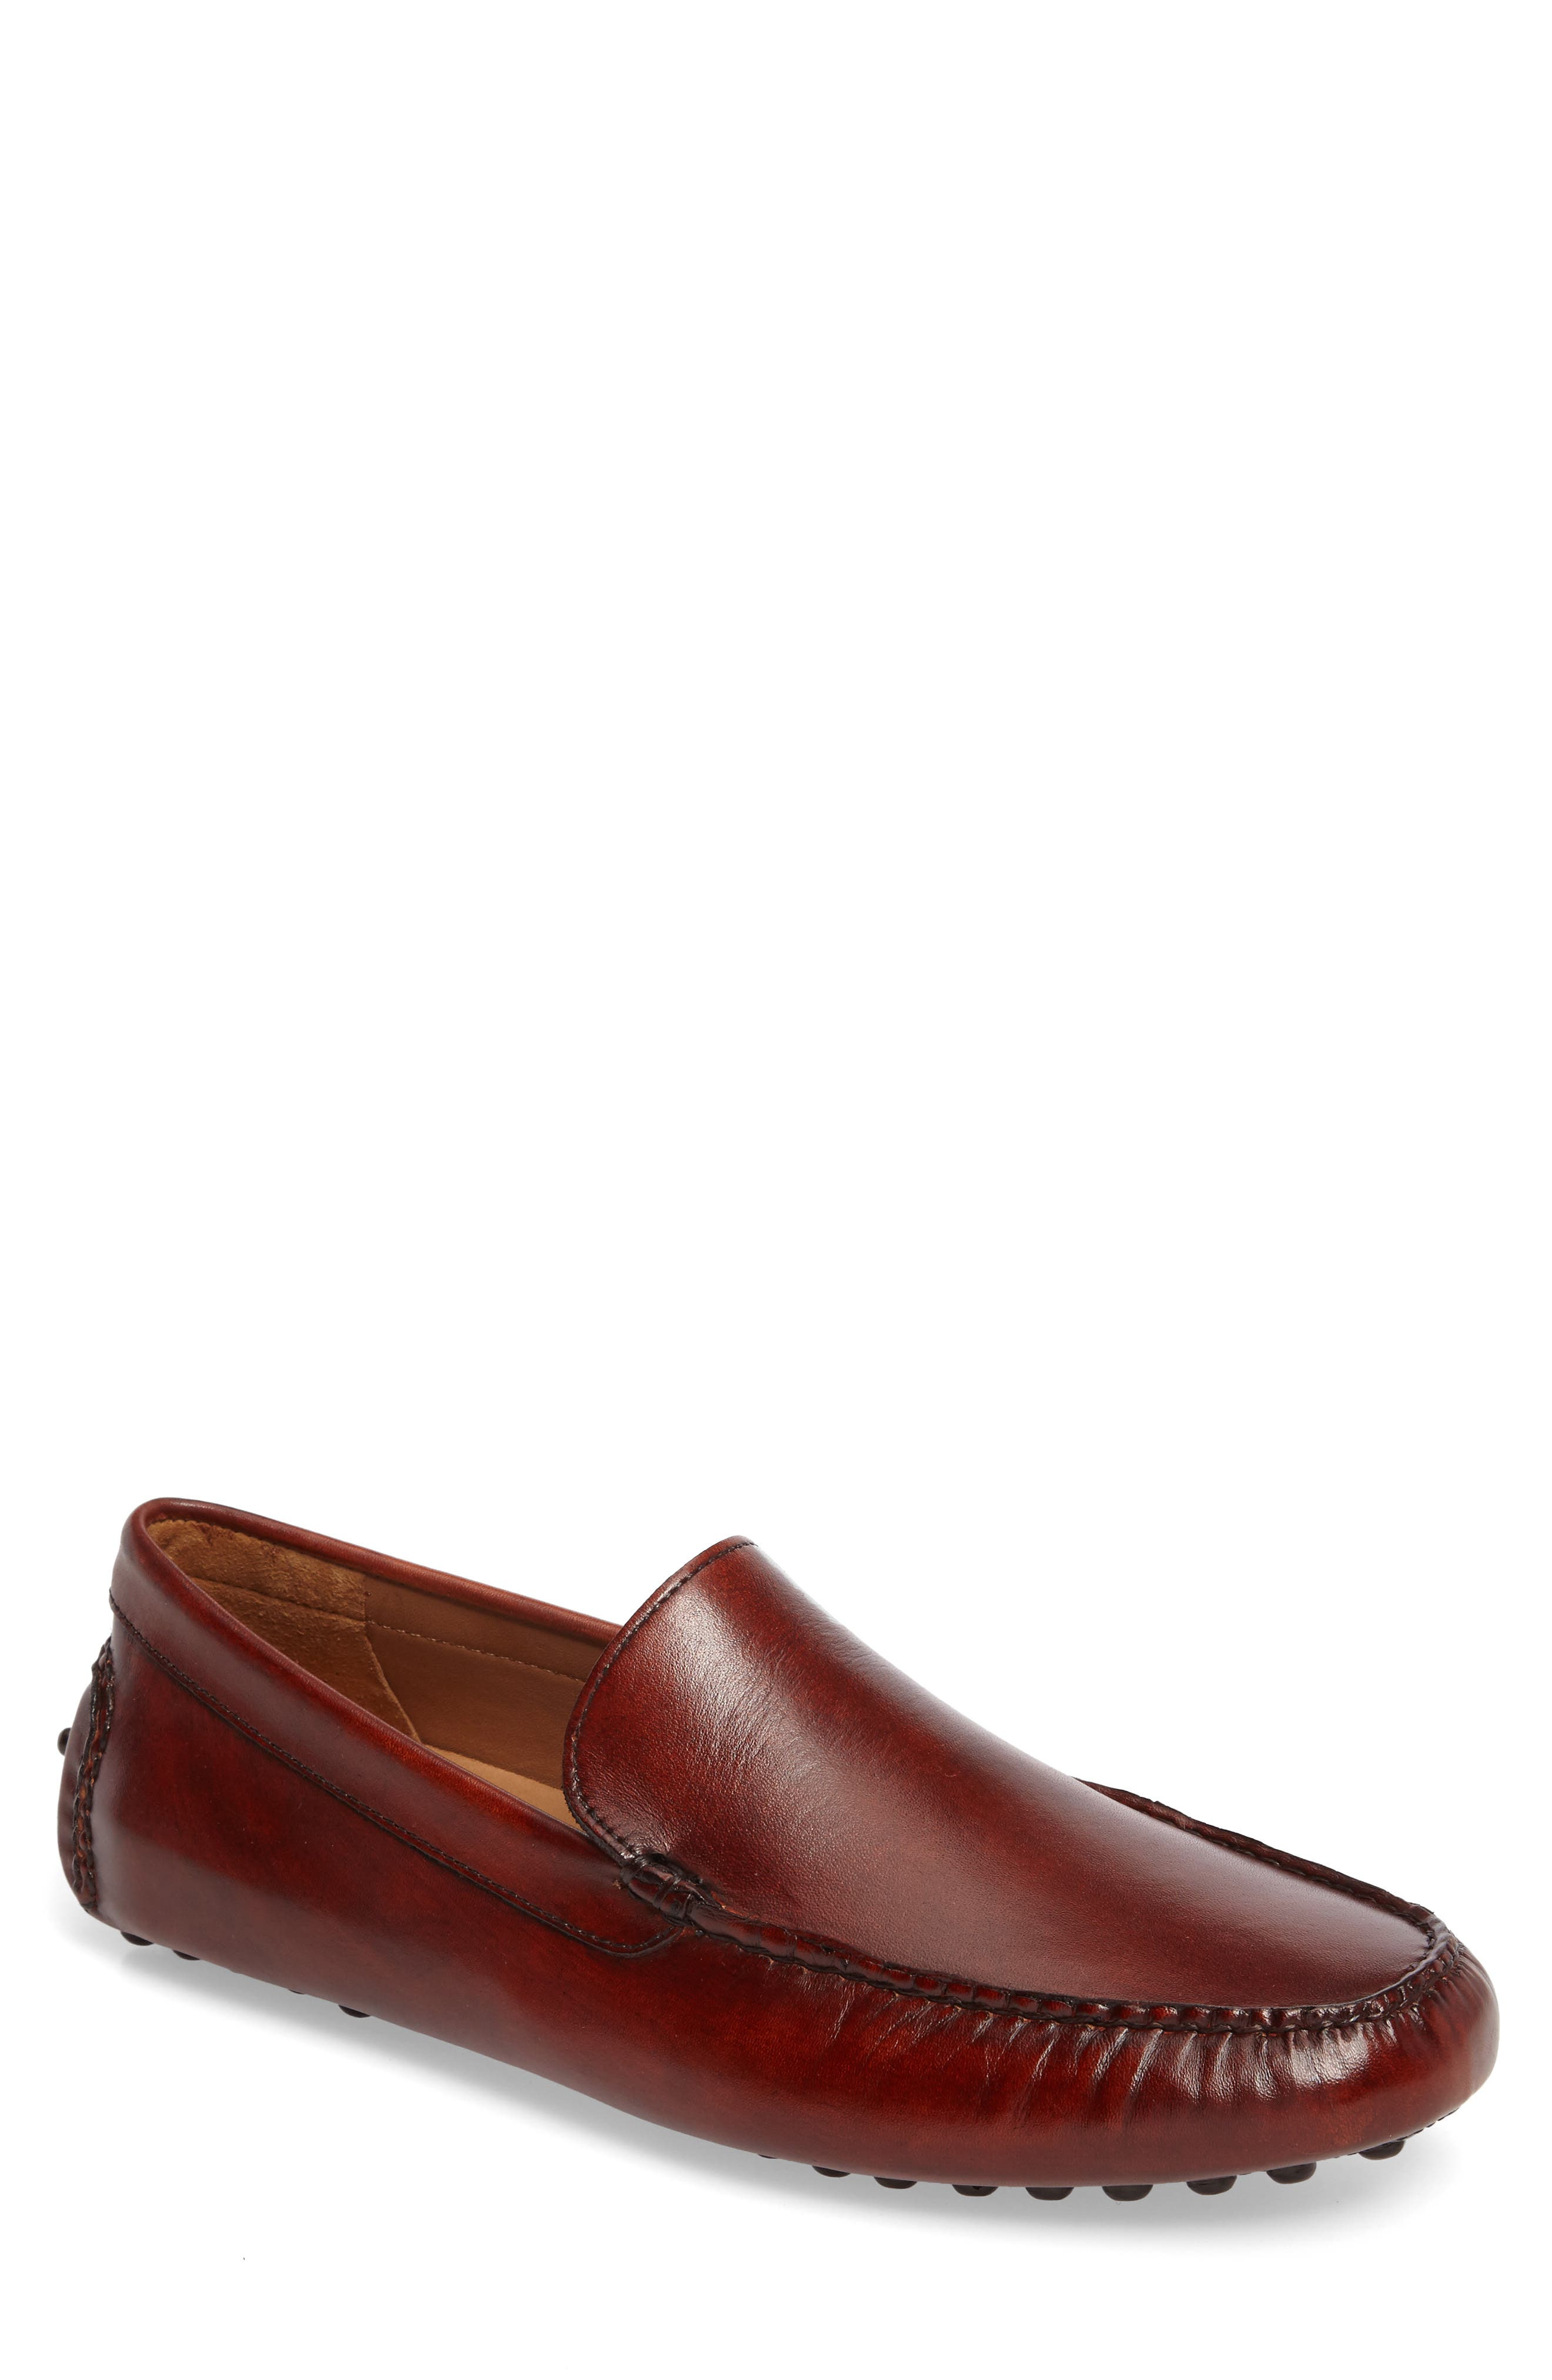 Cane Driving Shoe,                         Main,                         color, TAN LEATHER